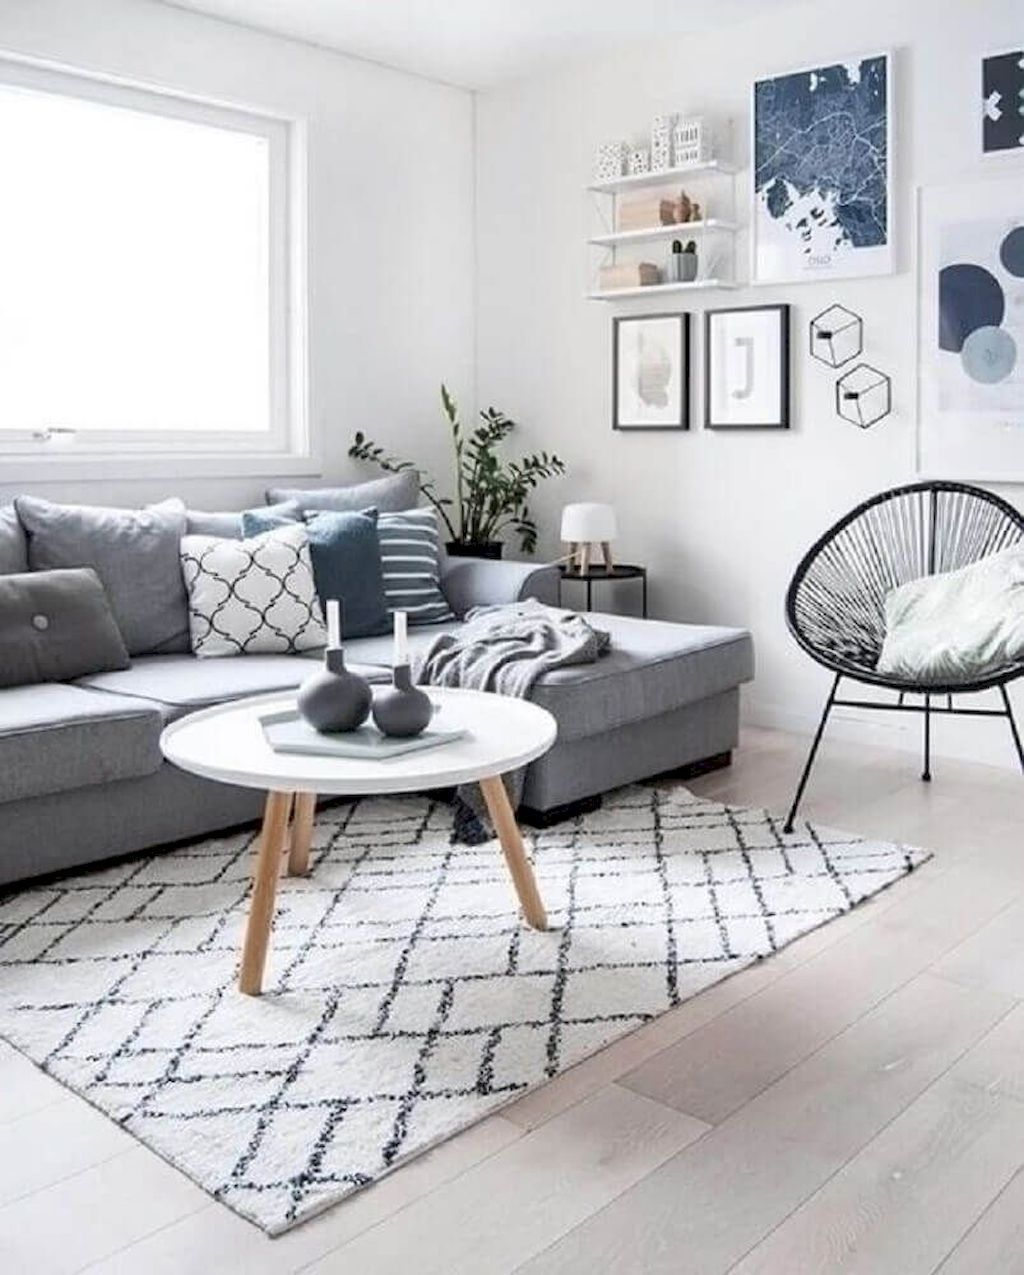 Make Your Small Room on Cramped Living Room to Enjoyable Place. images